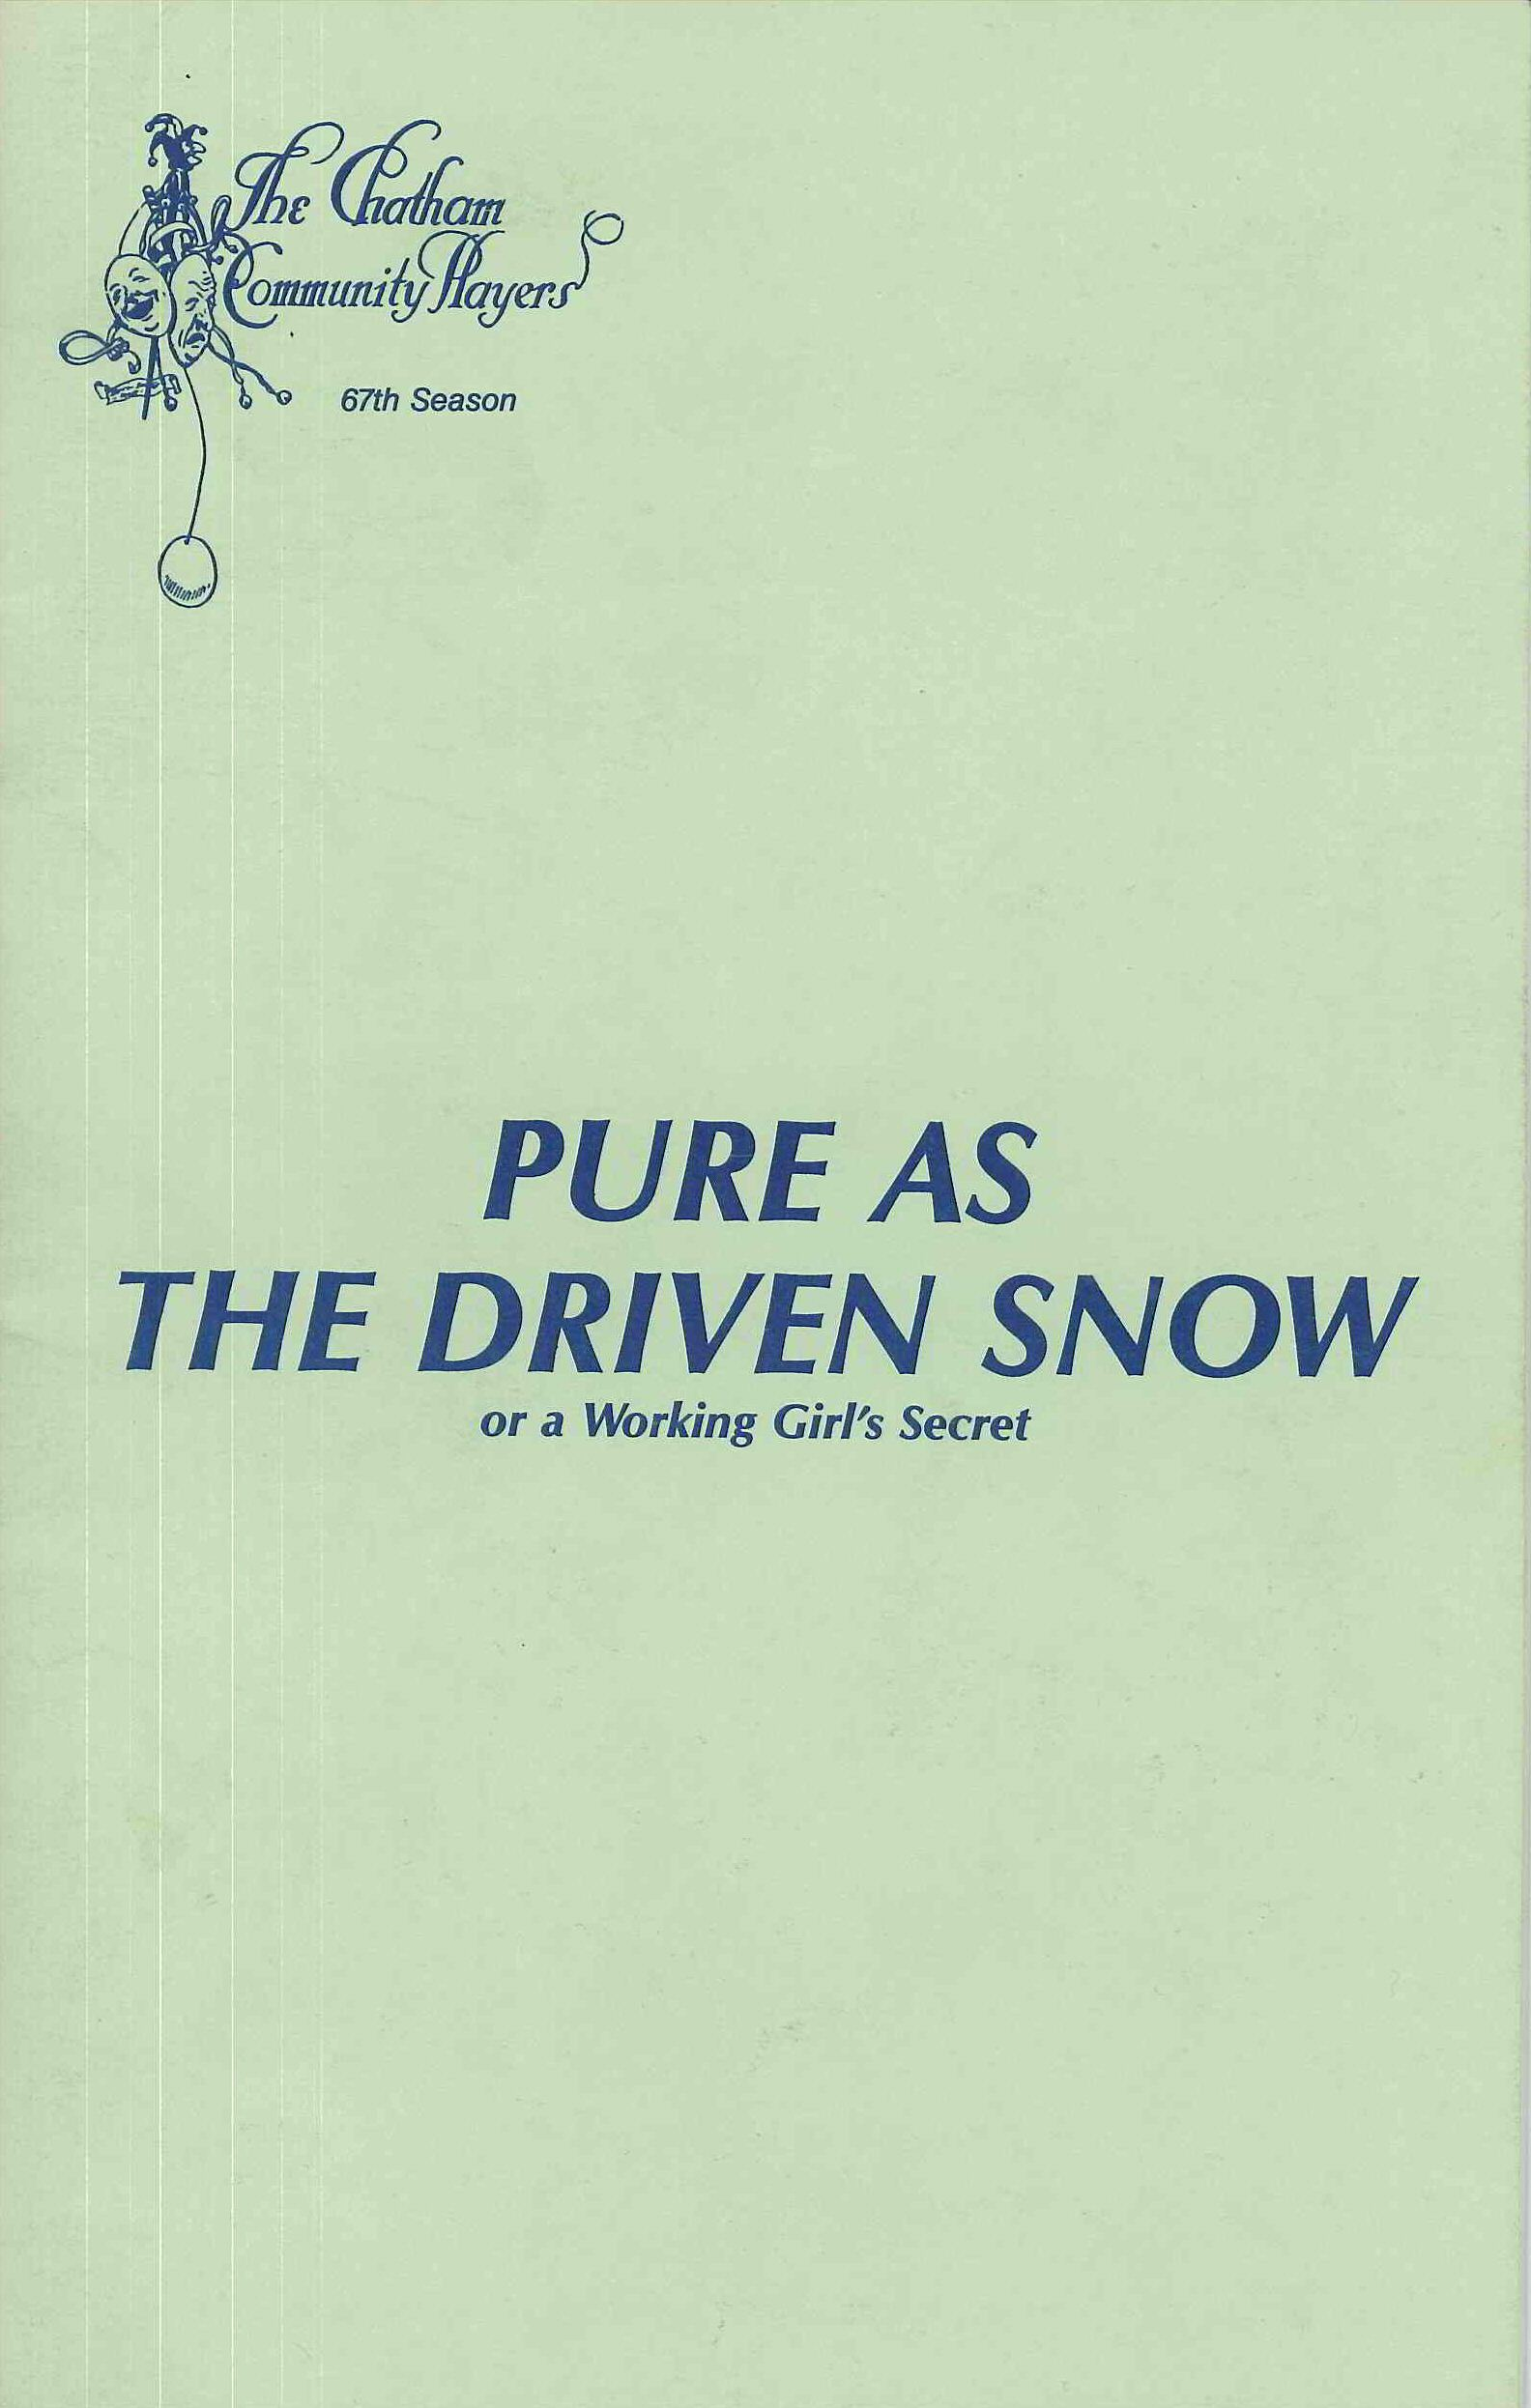 Pure As The Driven Snow (1988)